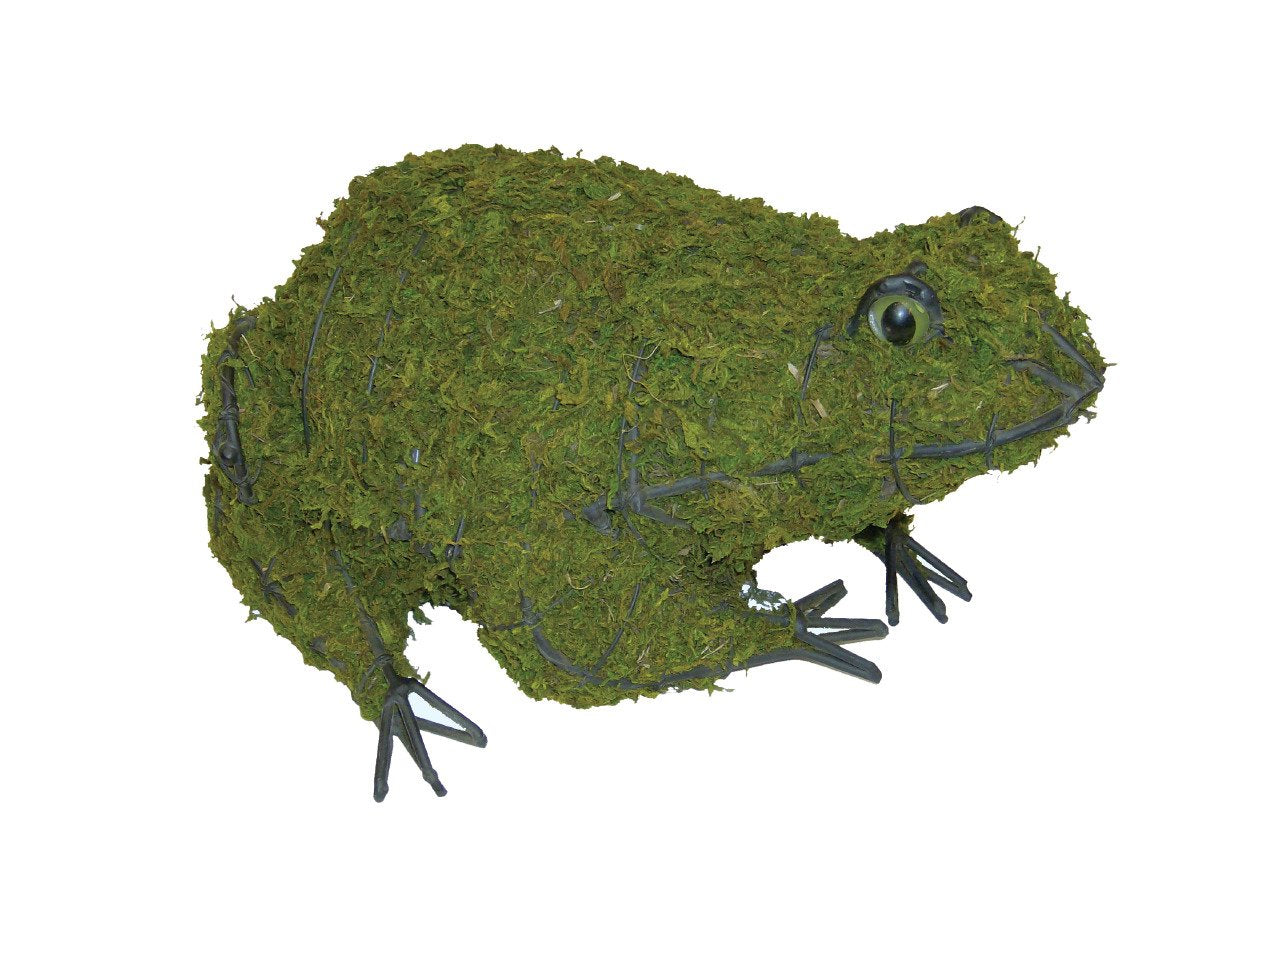 Frog Topiary Frame filled with green dyed Sphagnum moss - Henderson Garden Supply